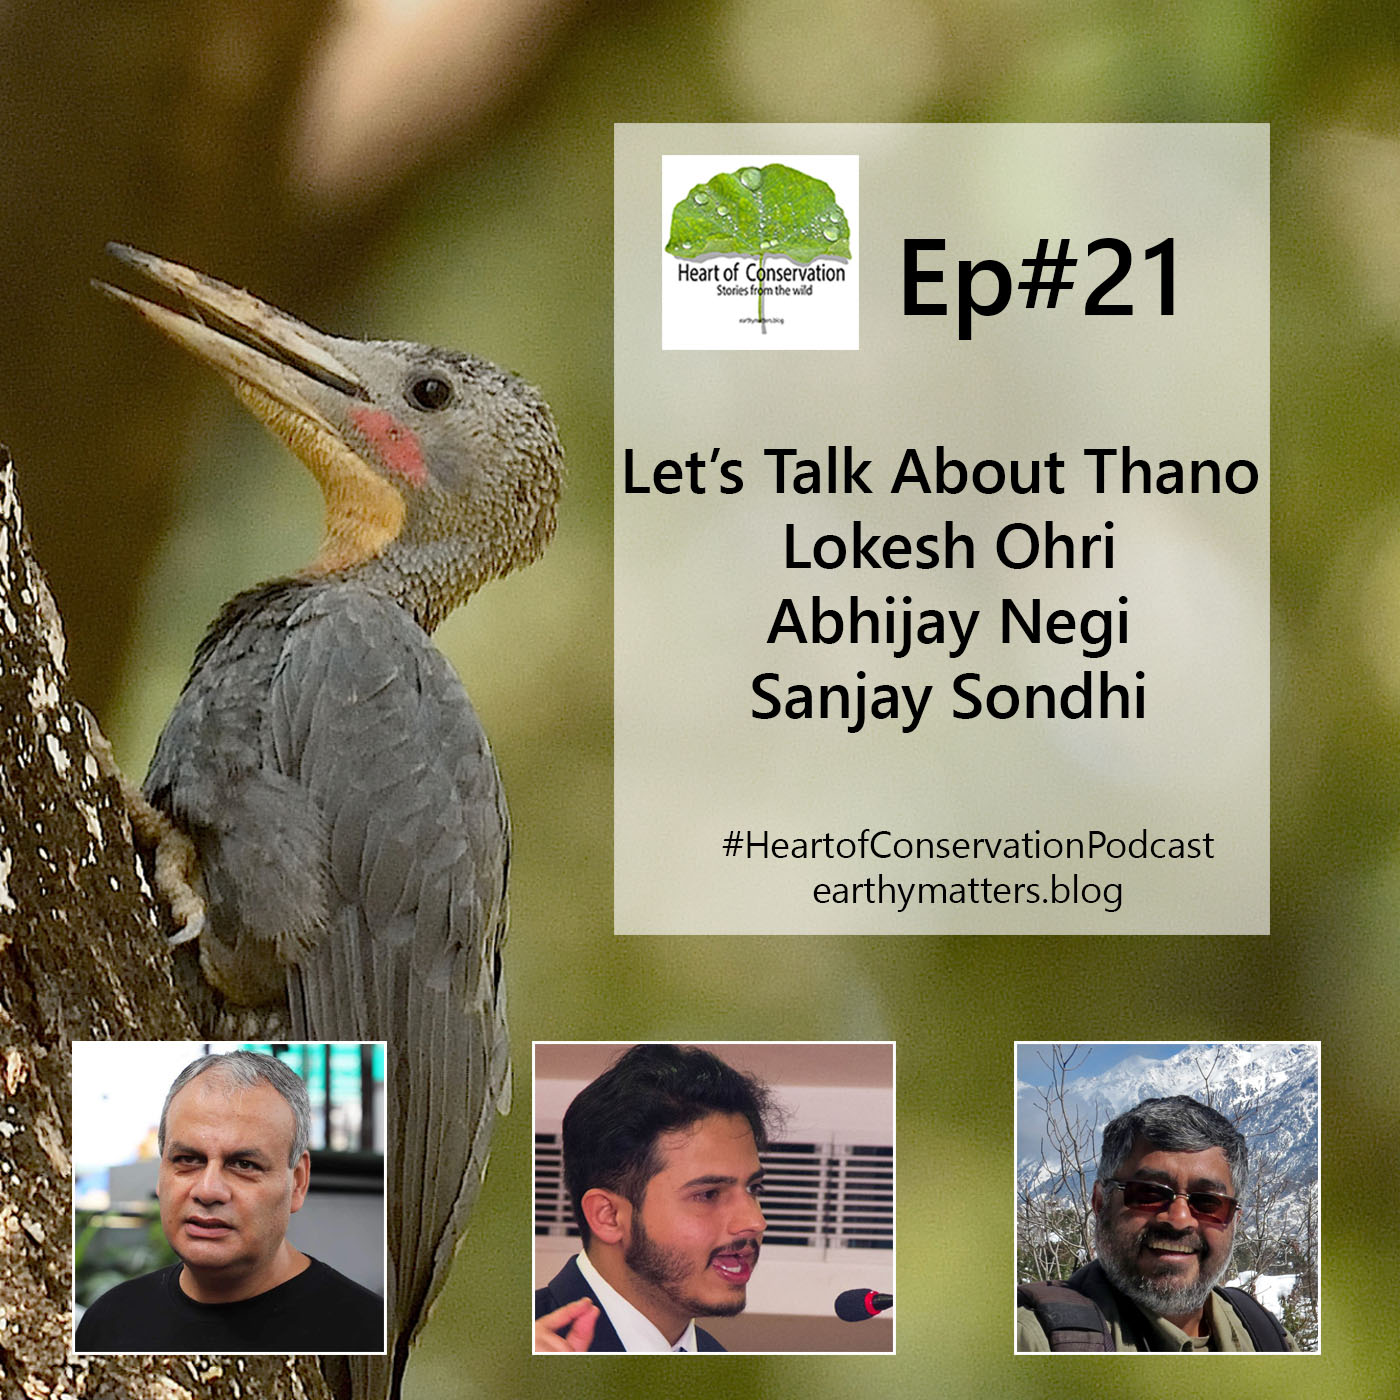 Let's Talk About Saving Thano Forest and the Biodiversity Under its Canopy.